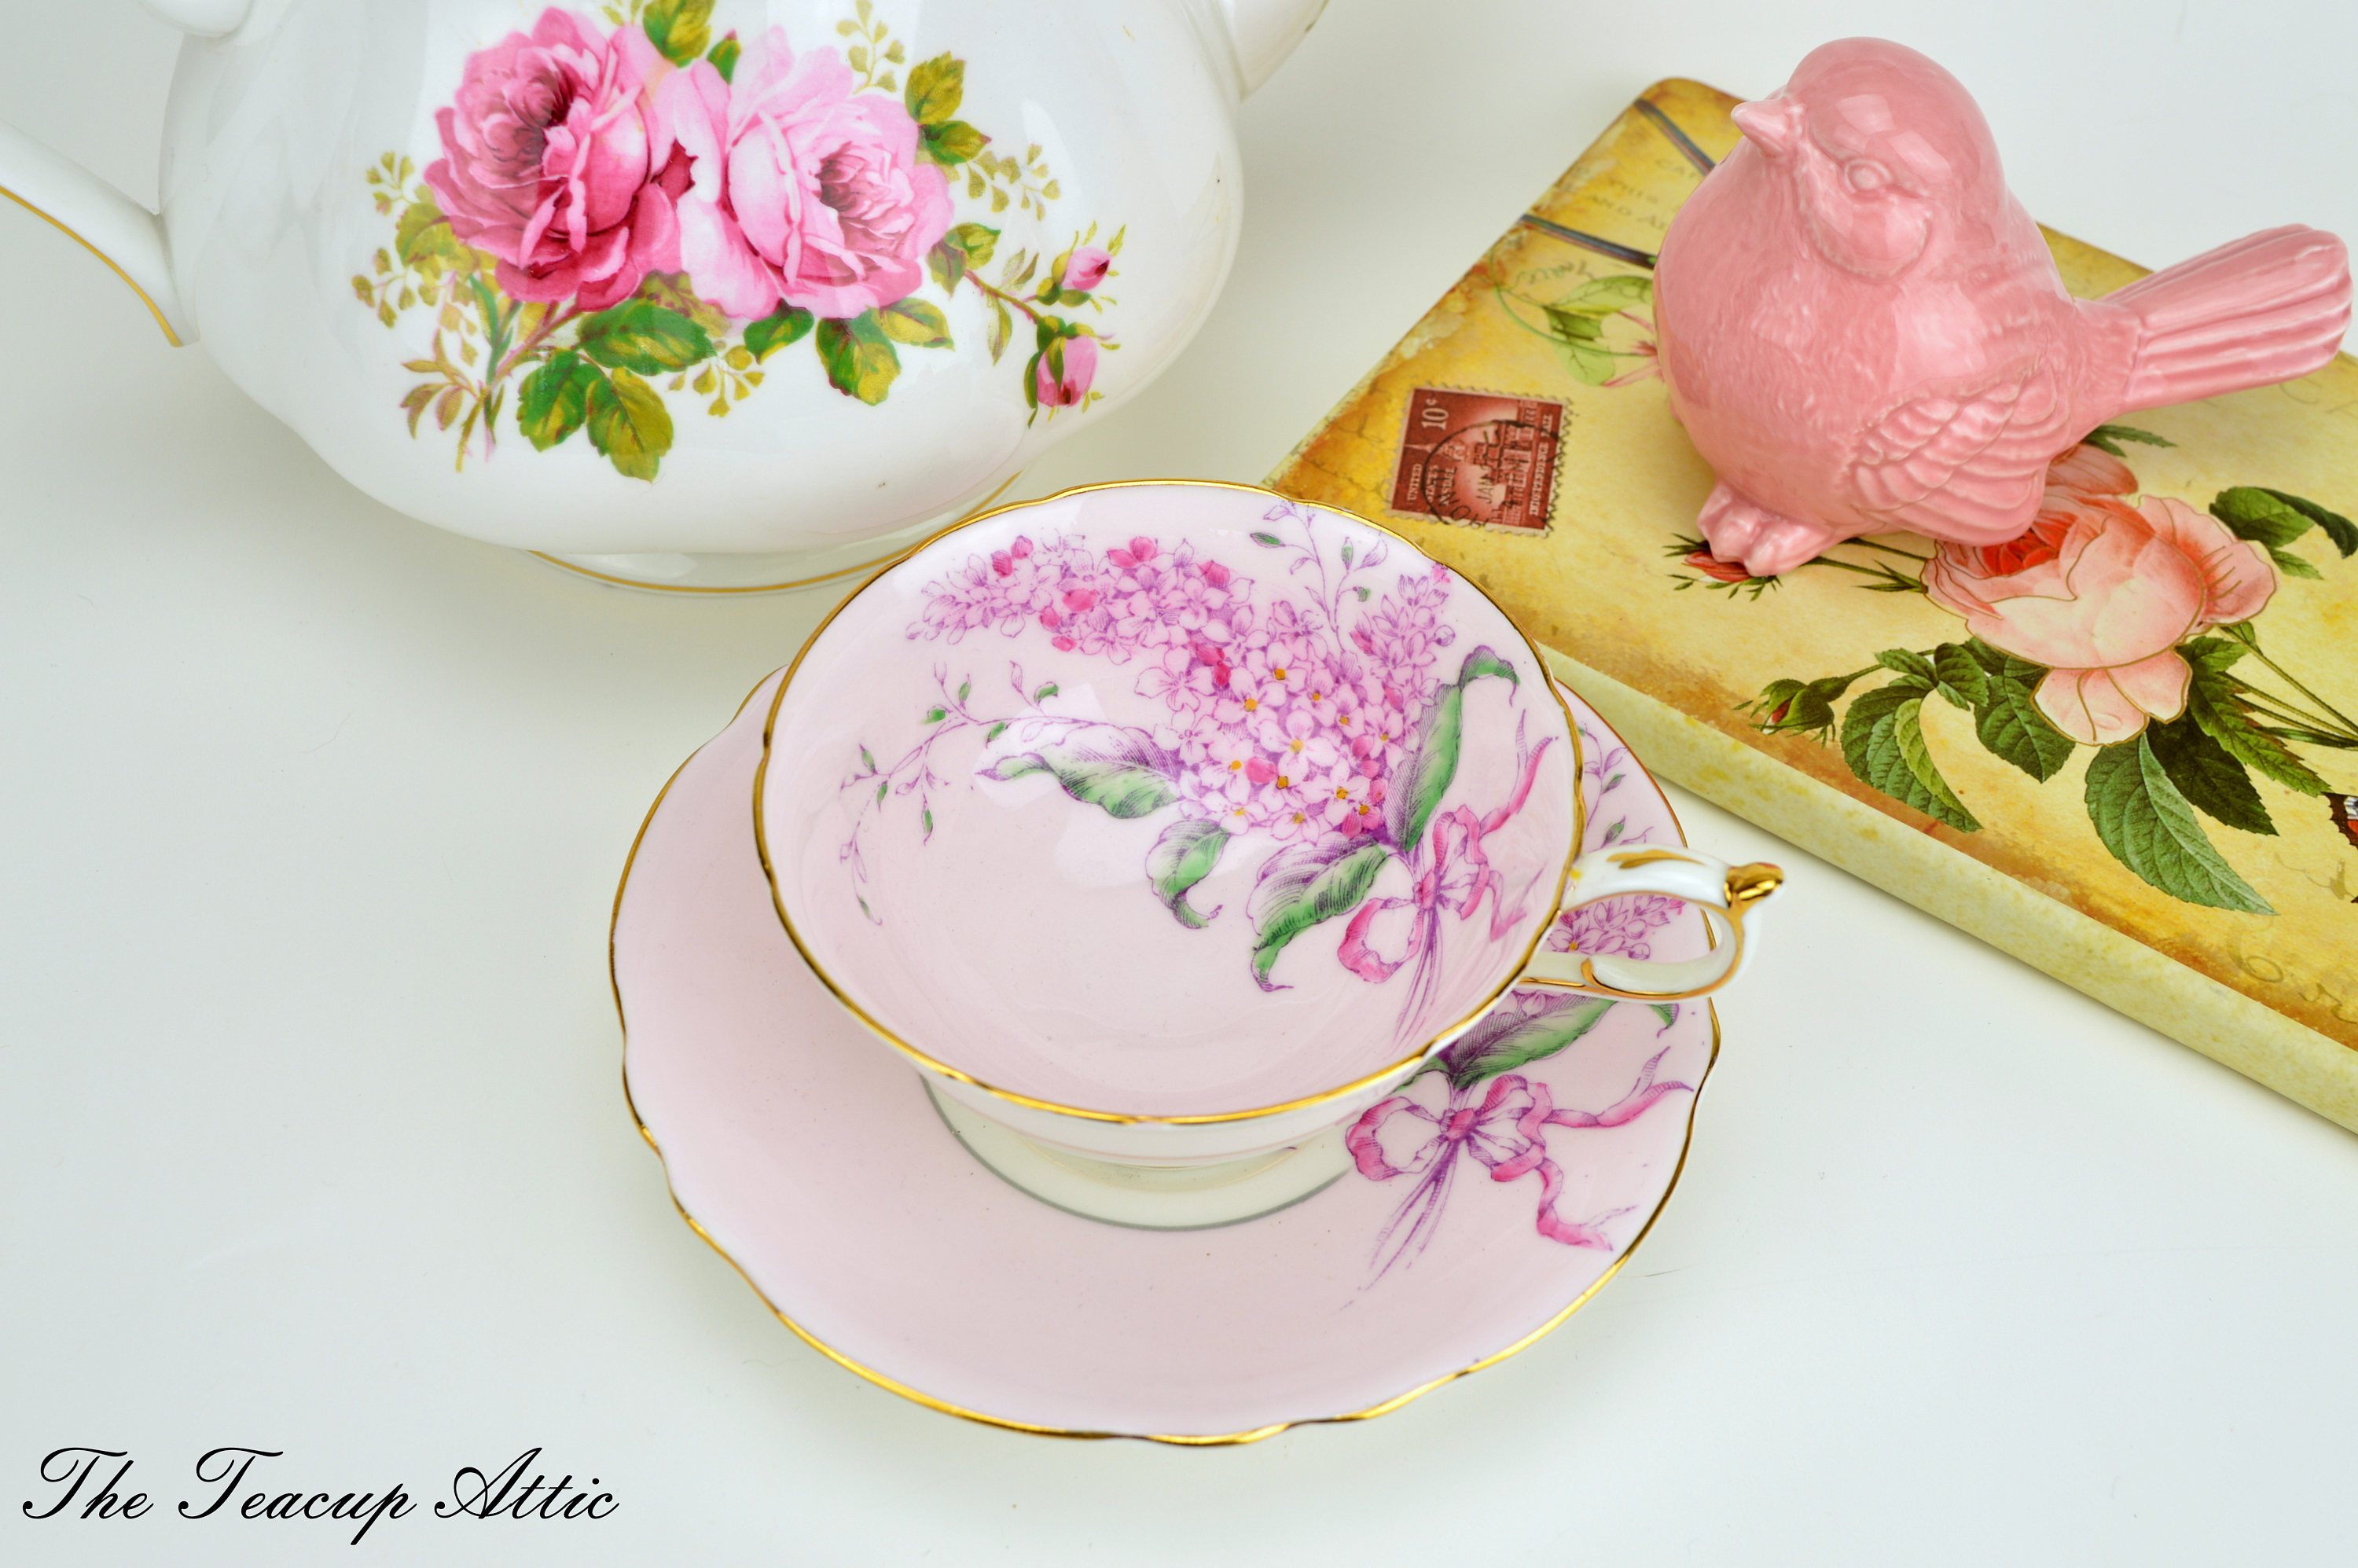 Paragon Pale Pink Wide Double Warrant Teacup With Lilac Flowers, Vintage English Bone China Tea Cup, Paragon Lilac, ca. 1952-1960